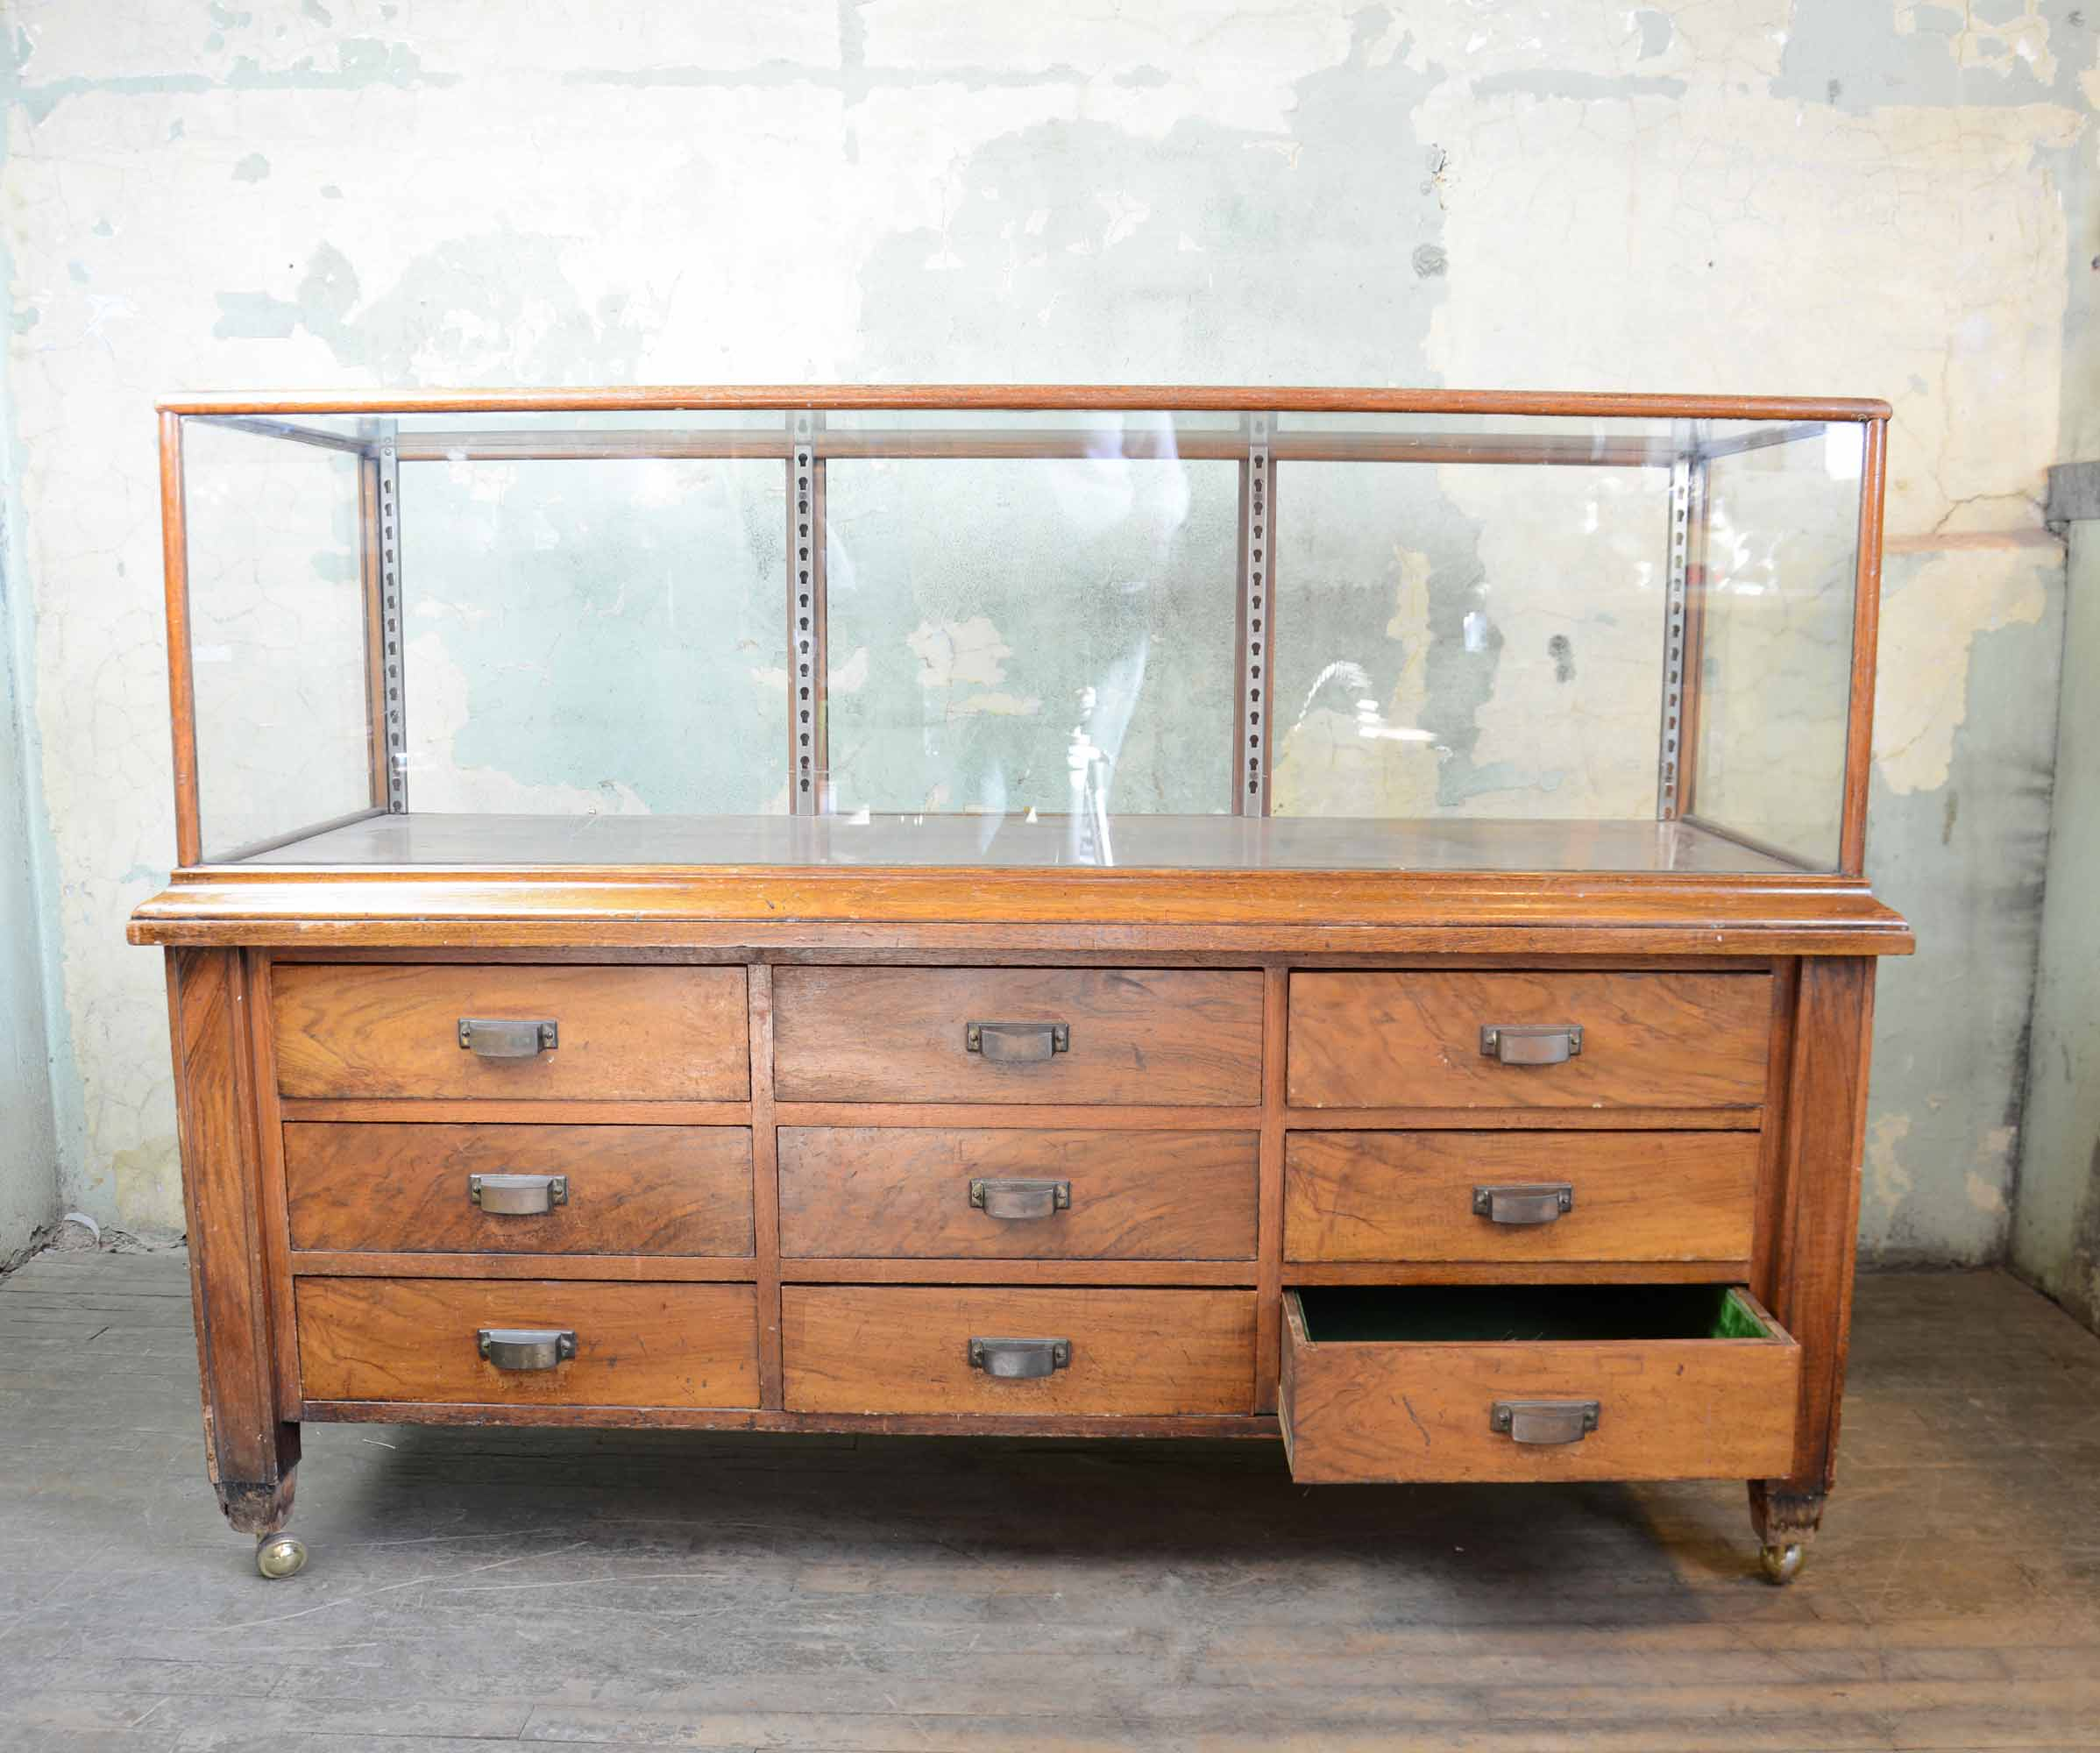 46917-display-case-with-drawers-FULL-OPEN-DRAWER.jpg